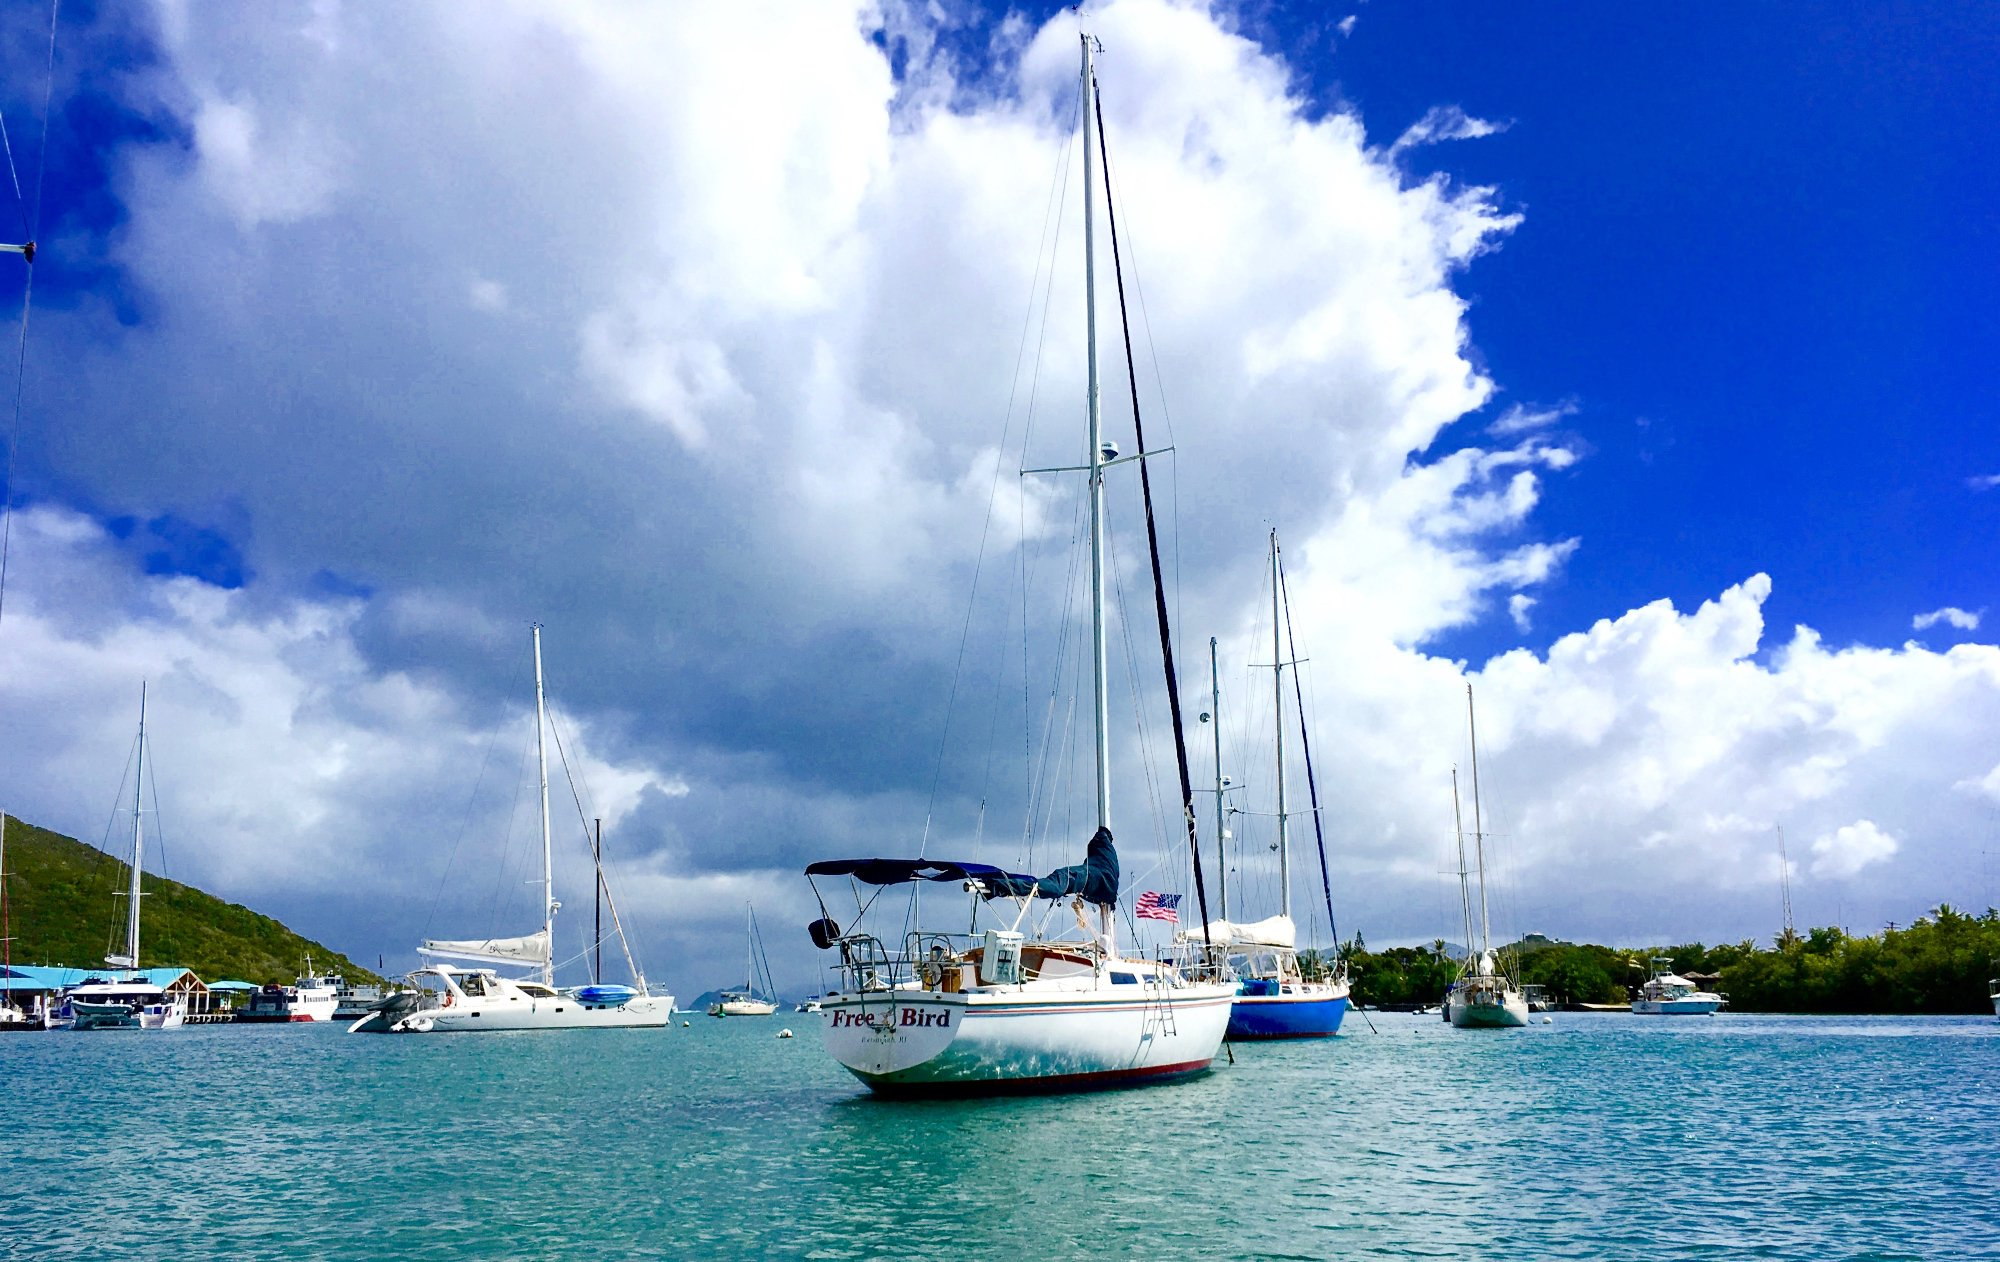 Day sail on Free Bird, Red Hook, St. Thomas